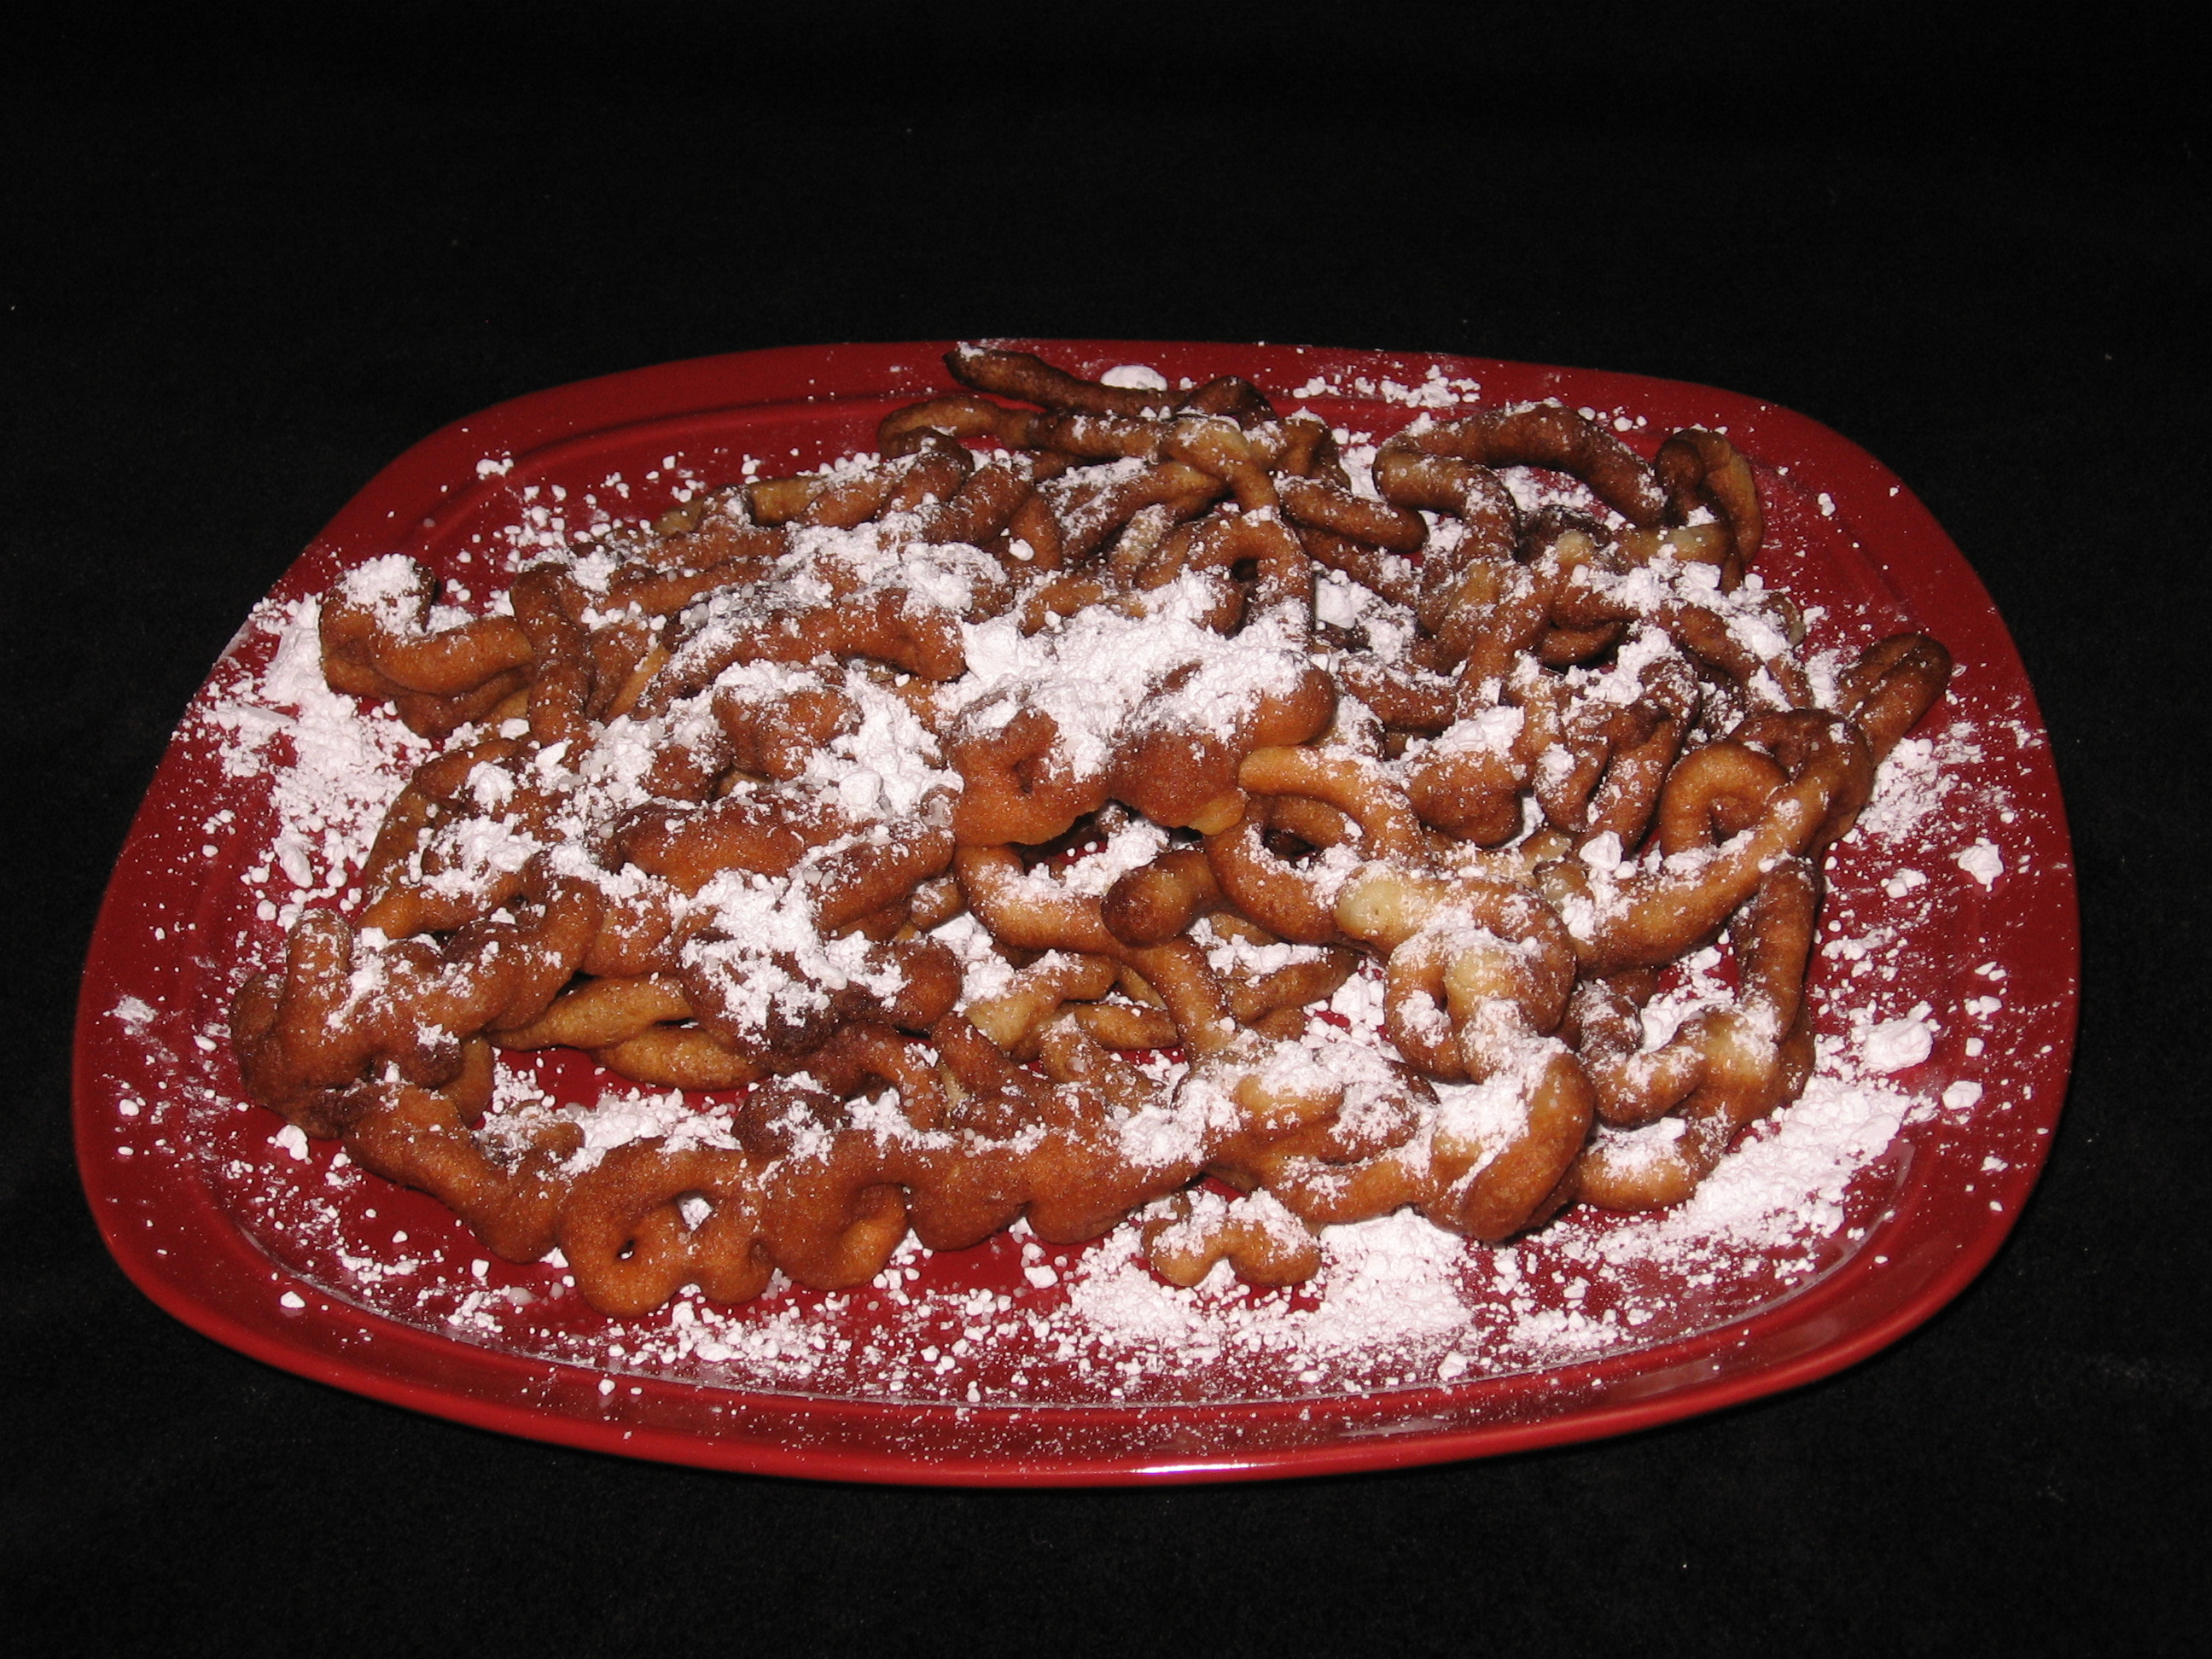 Delicious Homemade Funnel Cake